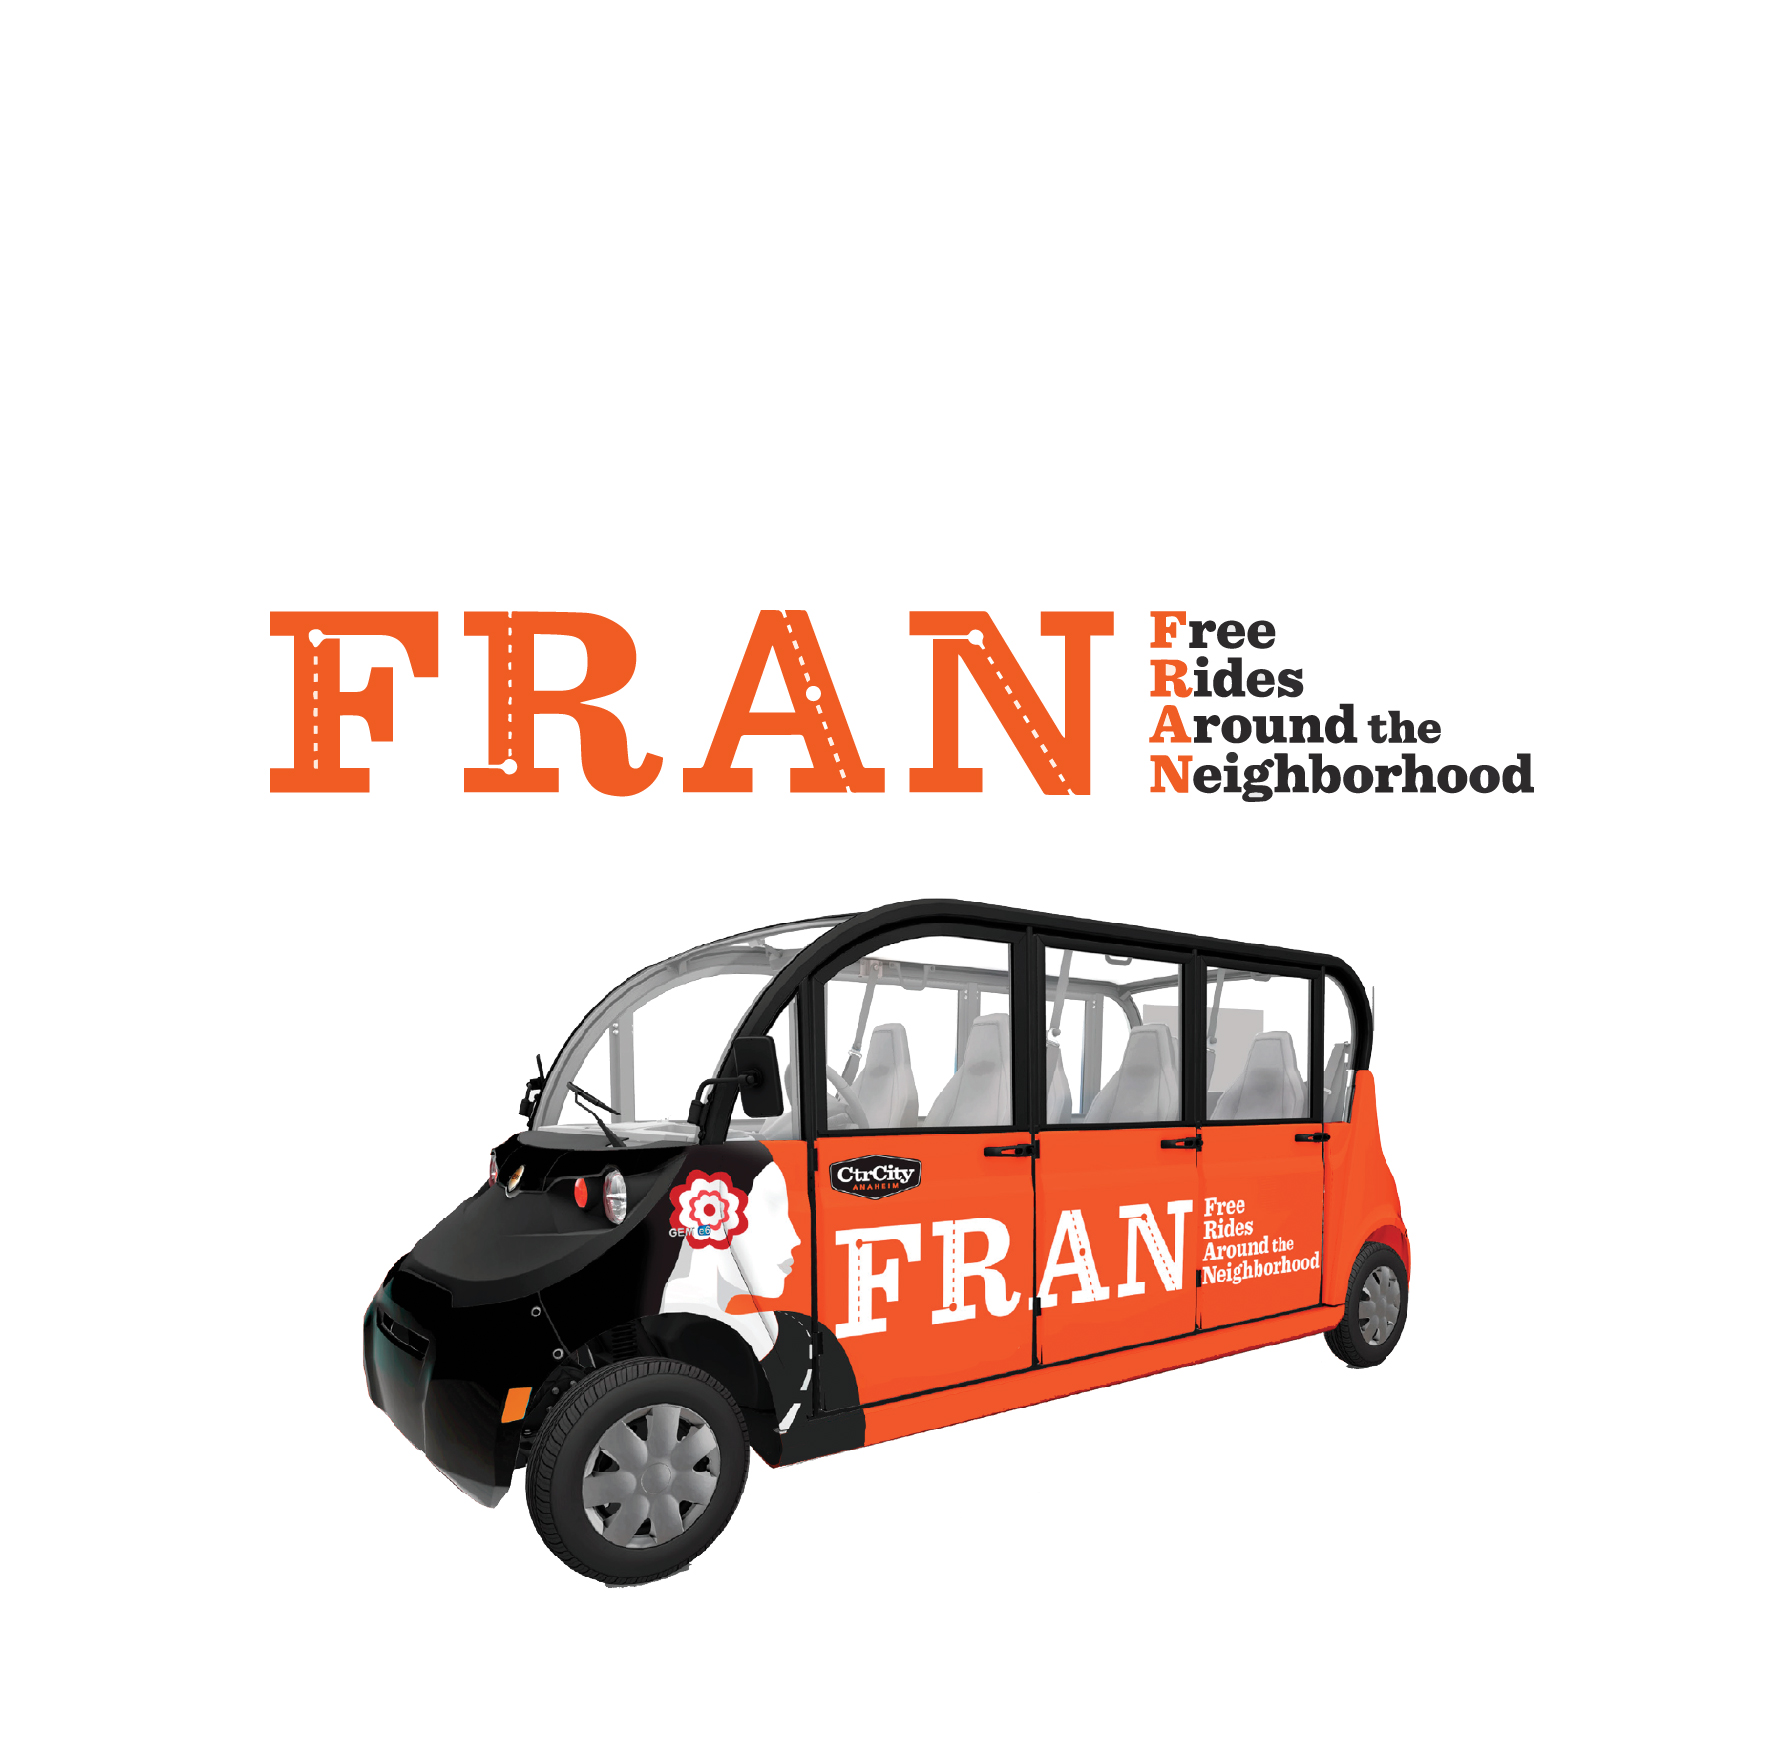 Need a FREE Ride? - FRAN's got you covered!Visitors in the area can request free rides via the Center City app. It's an app-based electric vehicle system similar to other ride-hailing services.Utilize FRAN, ride from the parking lot to the event in no time!